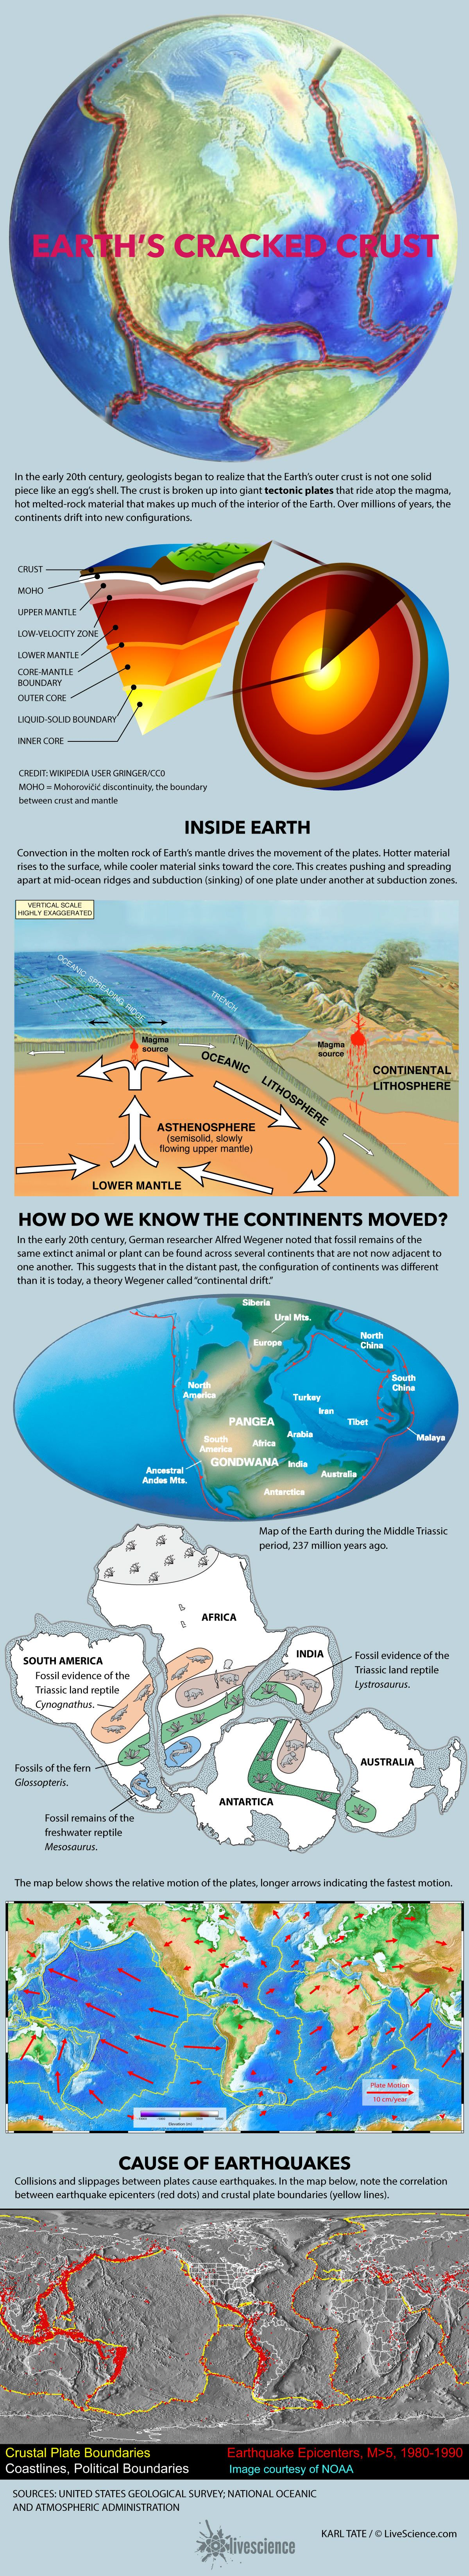 Plate Tectonics And Continental Drift Infographic